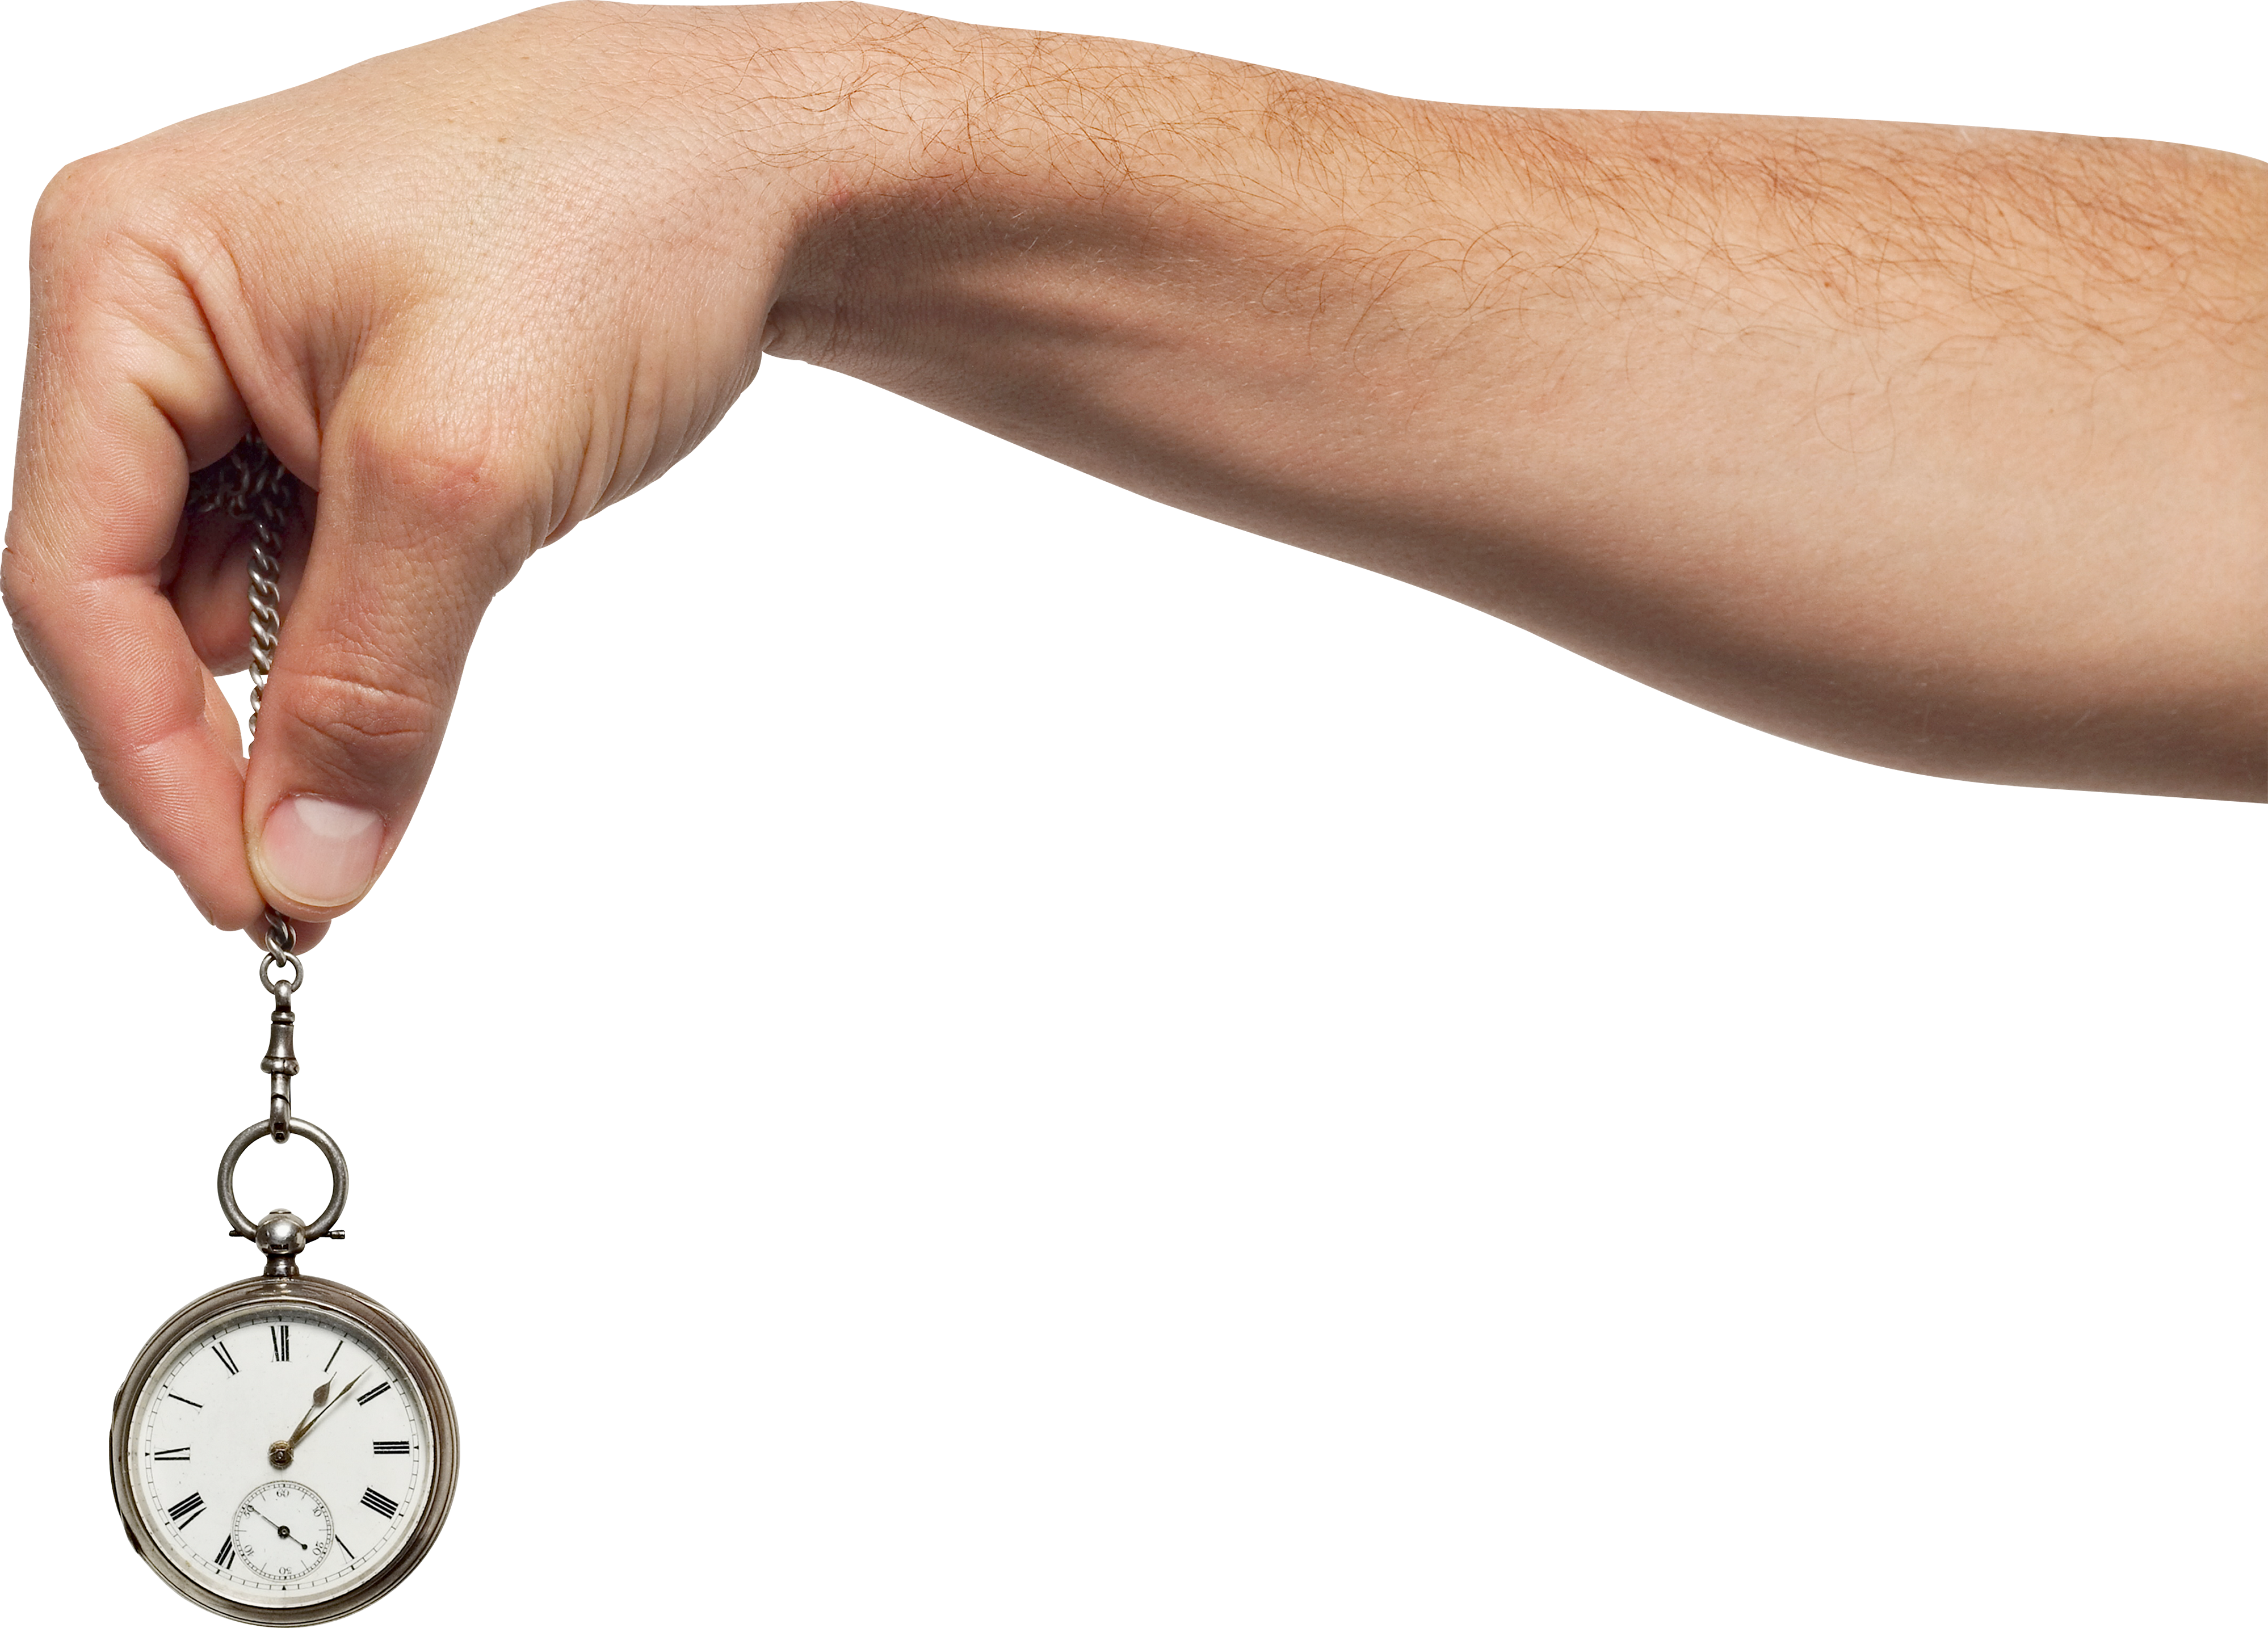 Pin By Cozybrushes On Ruka Hands Pocket Watch Png Images